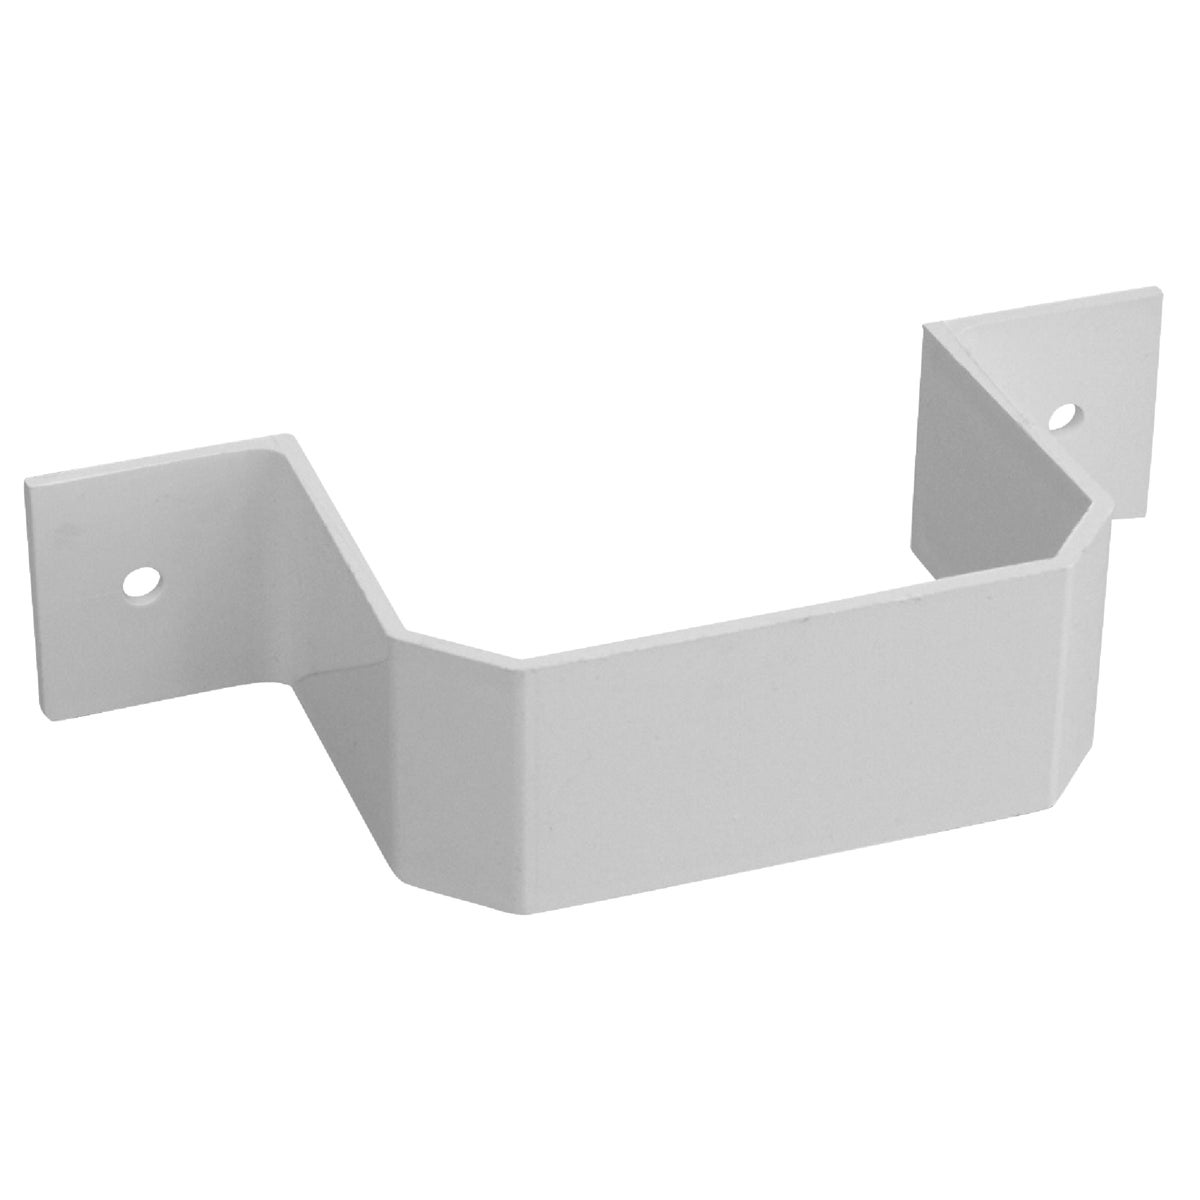 2X3WHT DOWNSPOUT BRACKET - AW202 by Genova Products